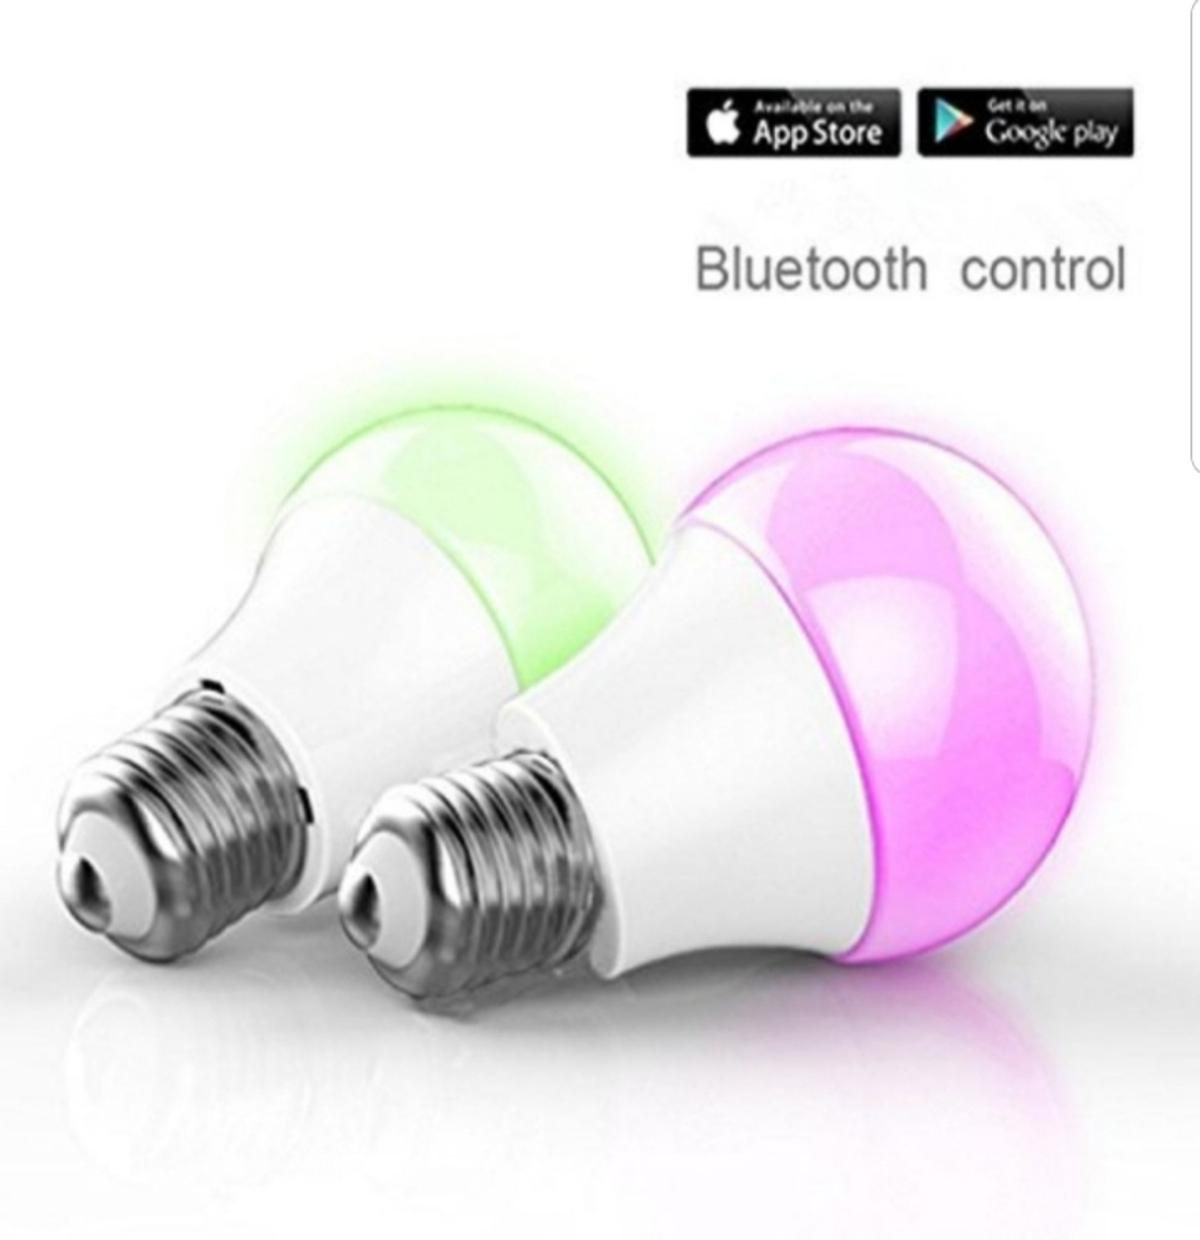 2 X Bluetooth Rgb Led Lampe E27 In 33397 Rietberg For 25 00 For Sale Shpock